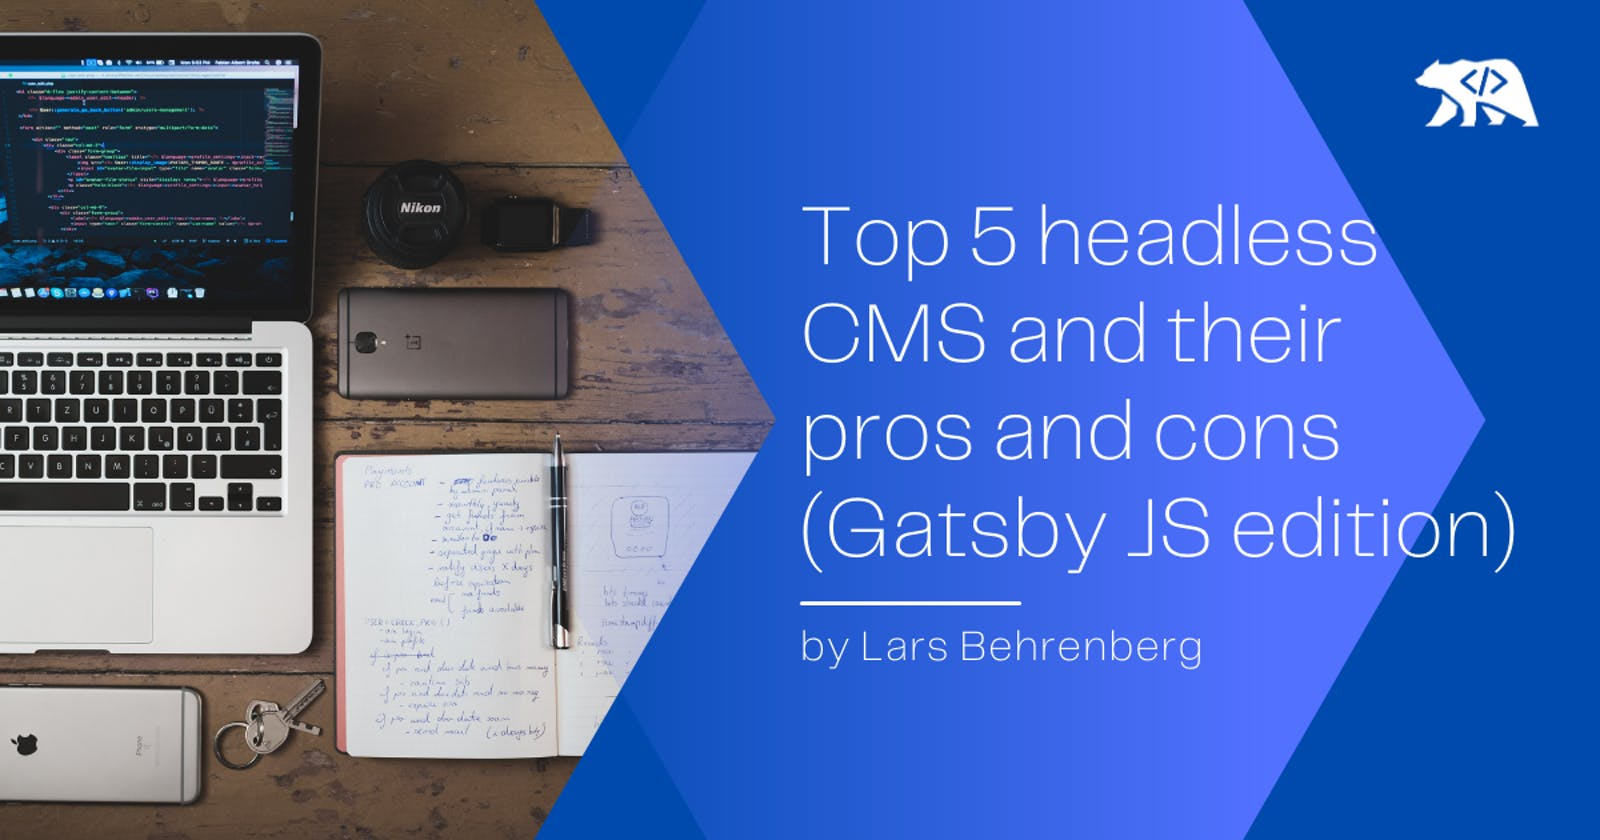 Top 5 headless CMS and their pros and cons (Gatsby JS edition)